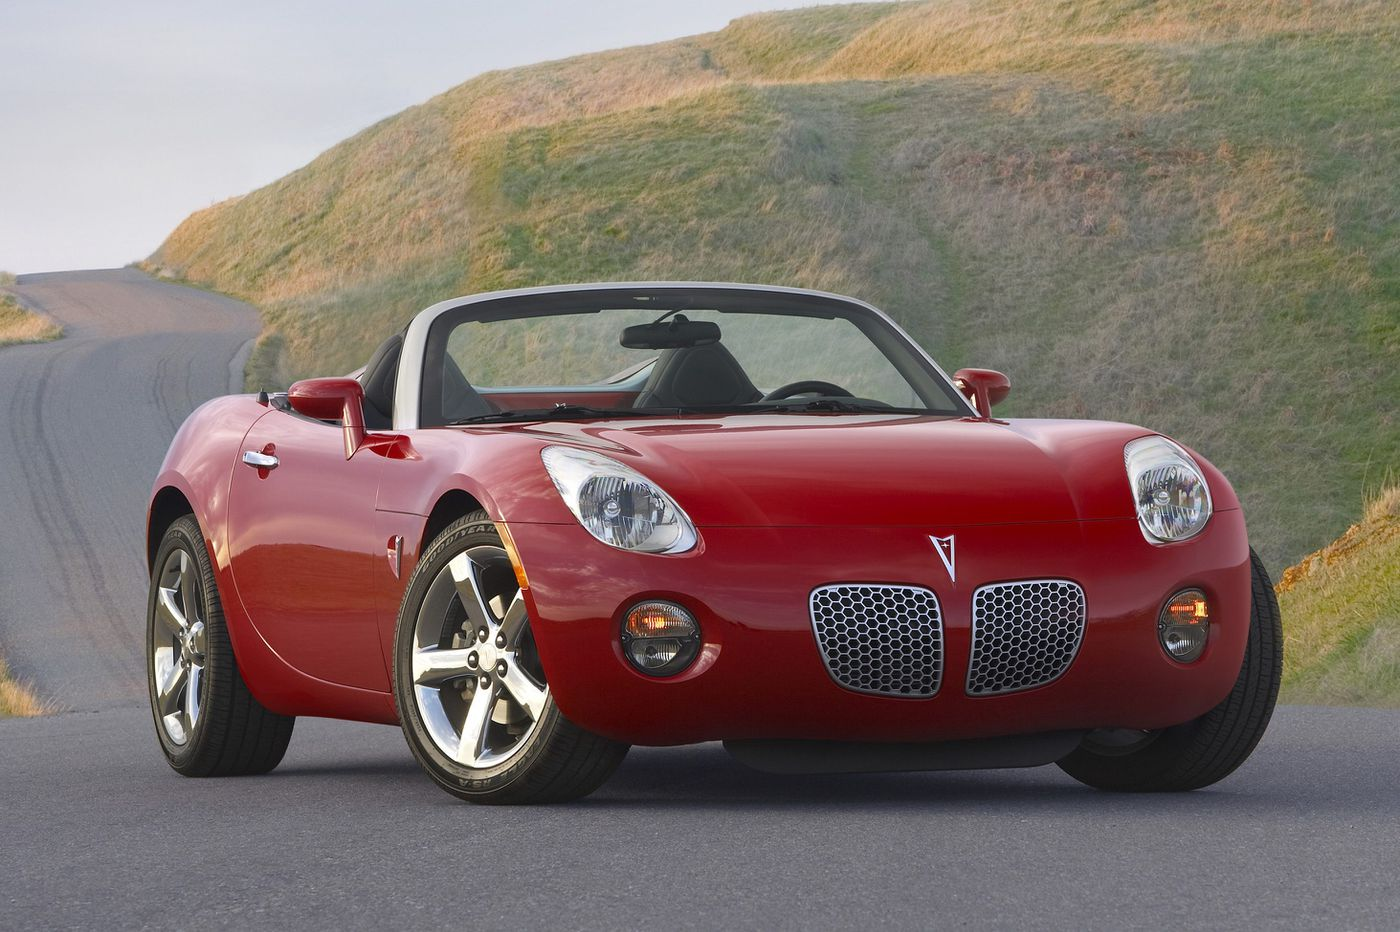 A roadster you just can't get over: The Pontiac Solstice | Al Haas